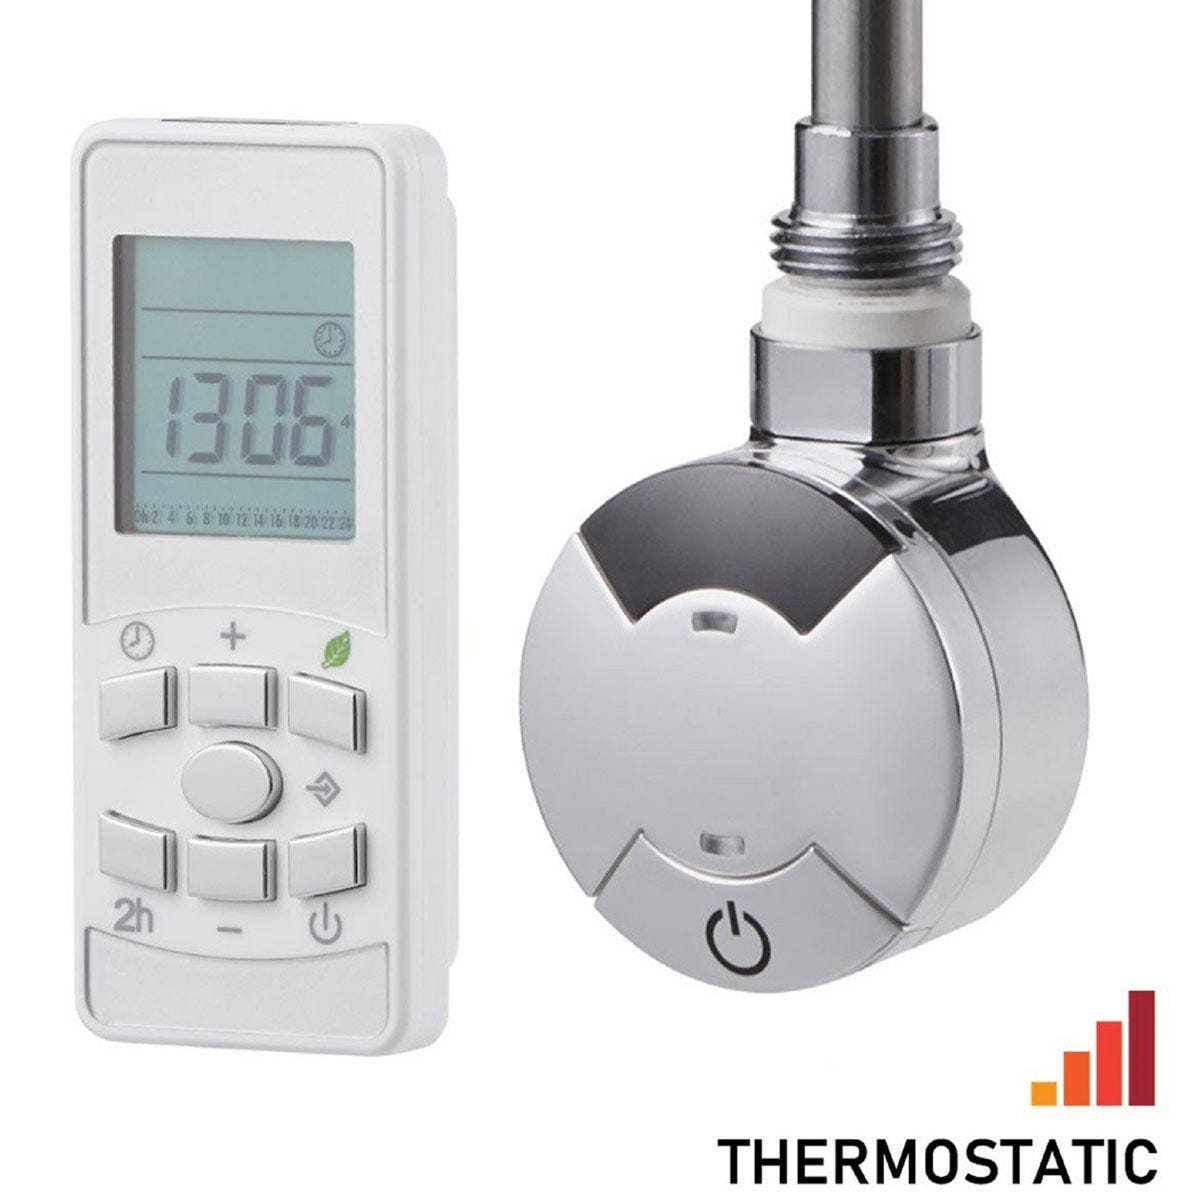 Heating Style Timed Remote Control Thermostatic 300W Element + T-Piece - Chrome